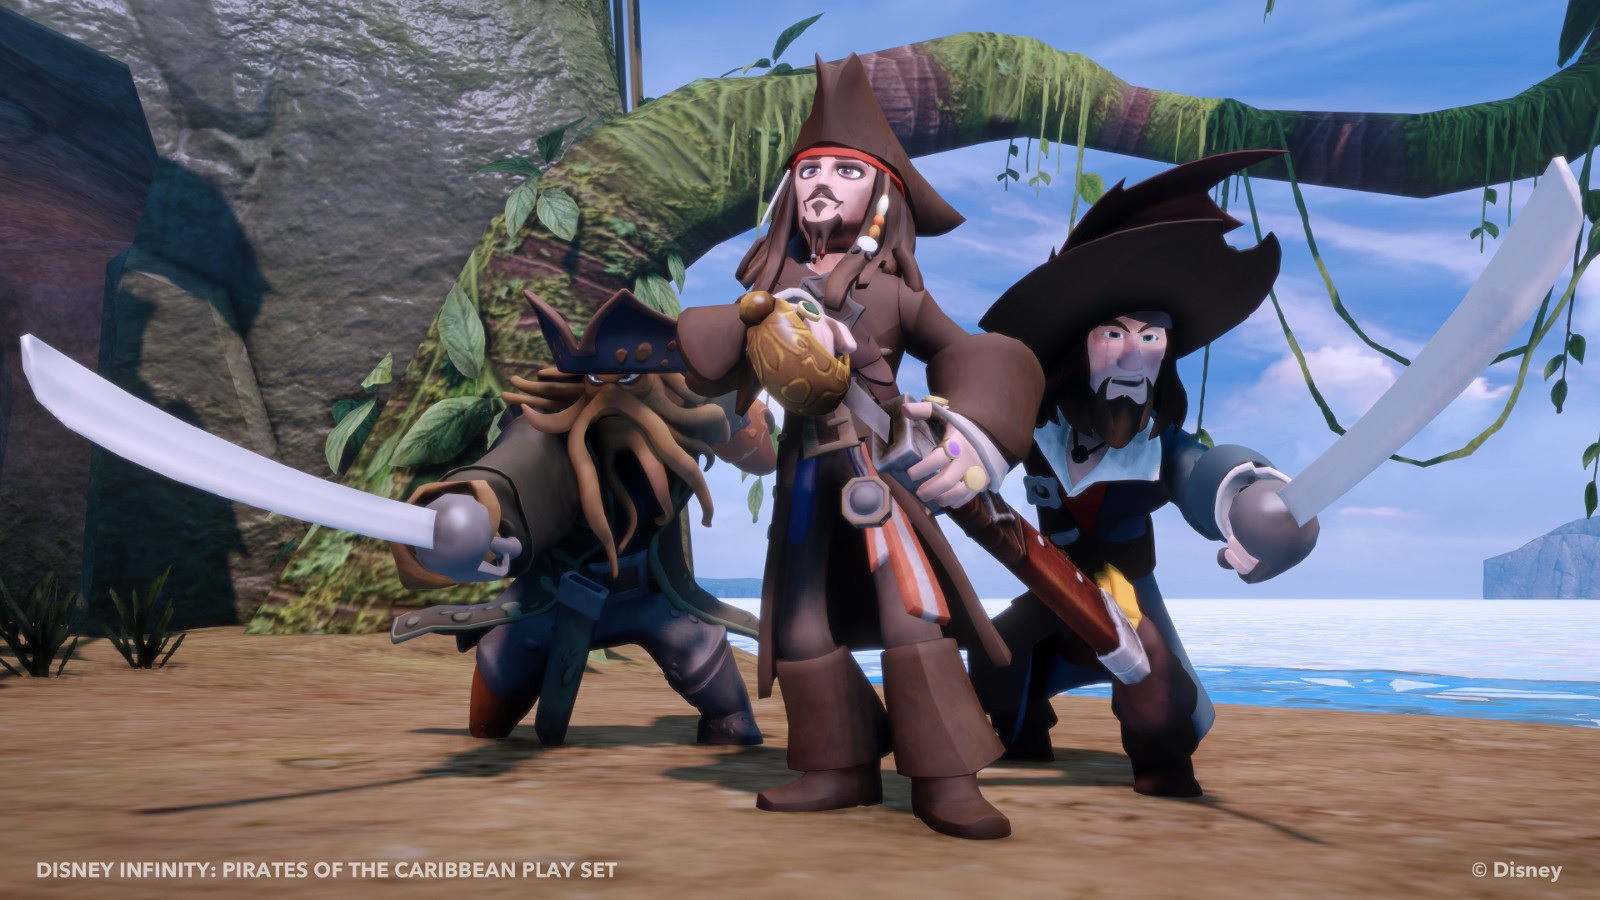 Disney Infinity 2 on PS4 and Xbox One this year?